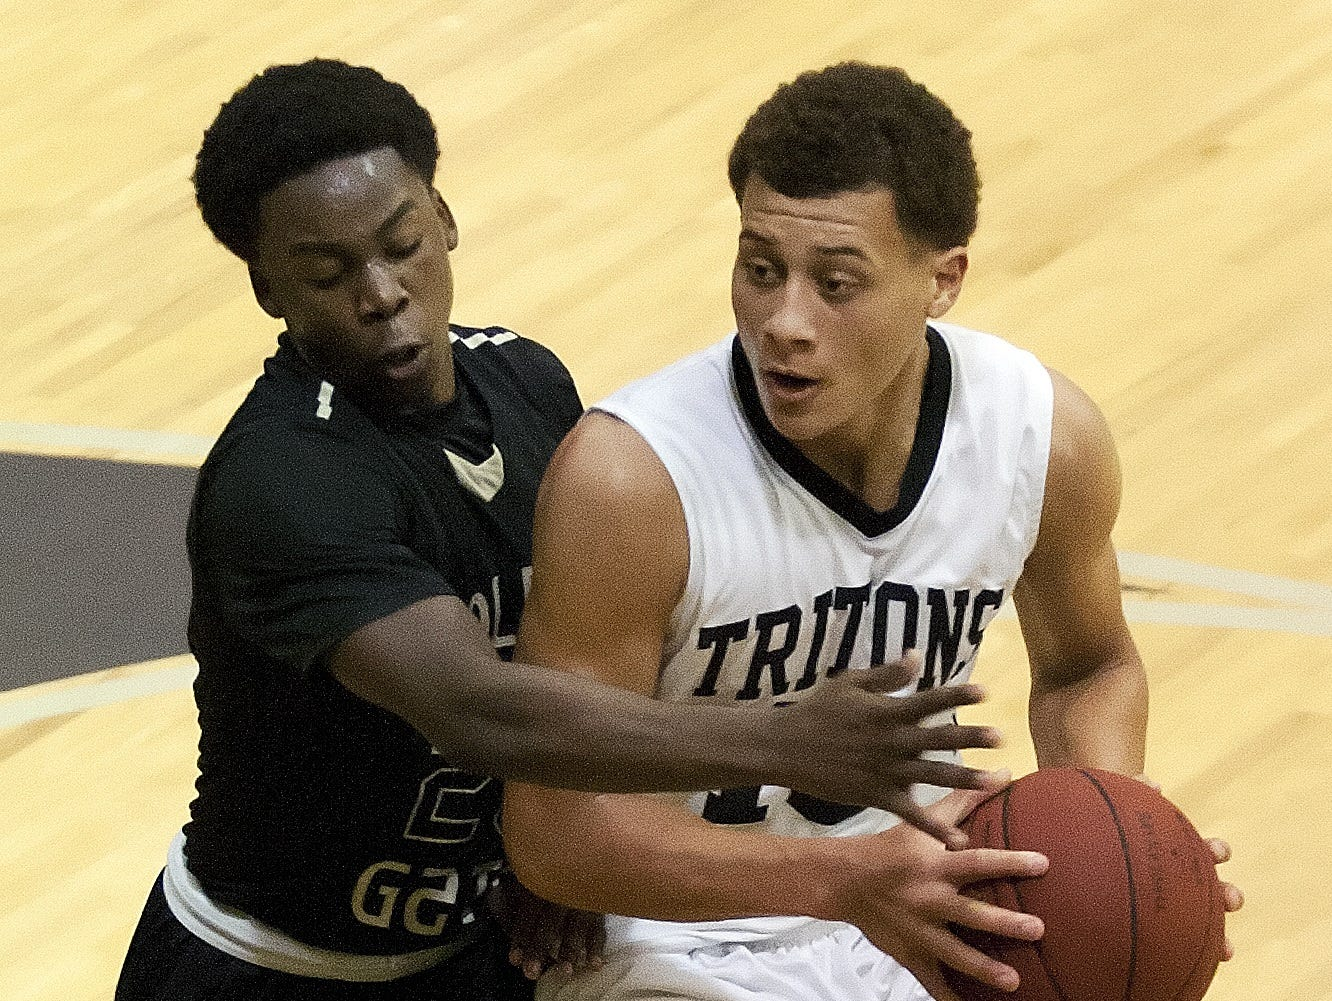 Jacob Tracey has transferred from Mariner to Riverdale in his sophomore season. Will it make a big difference?